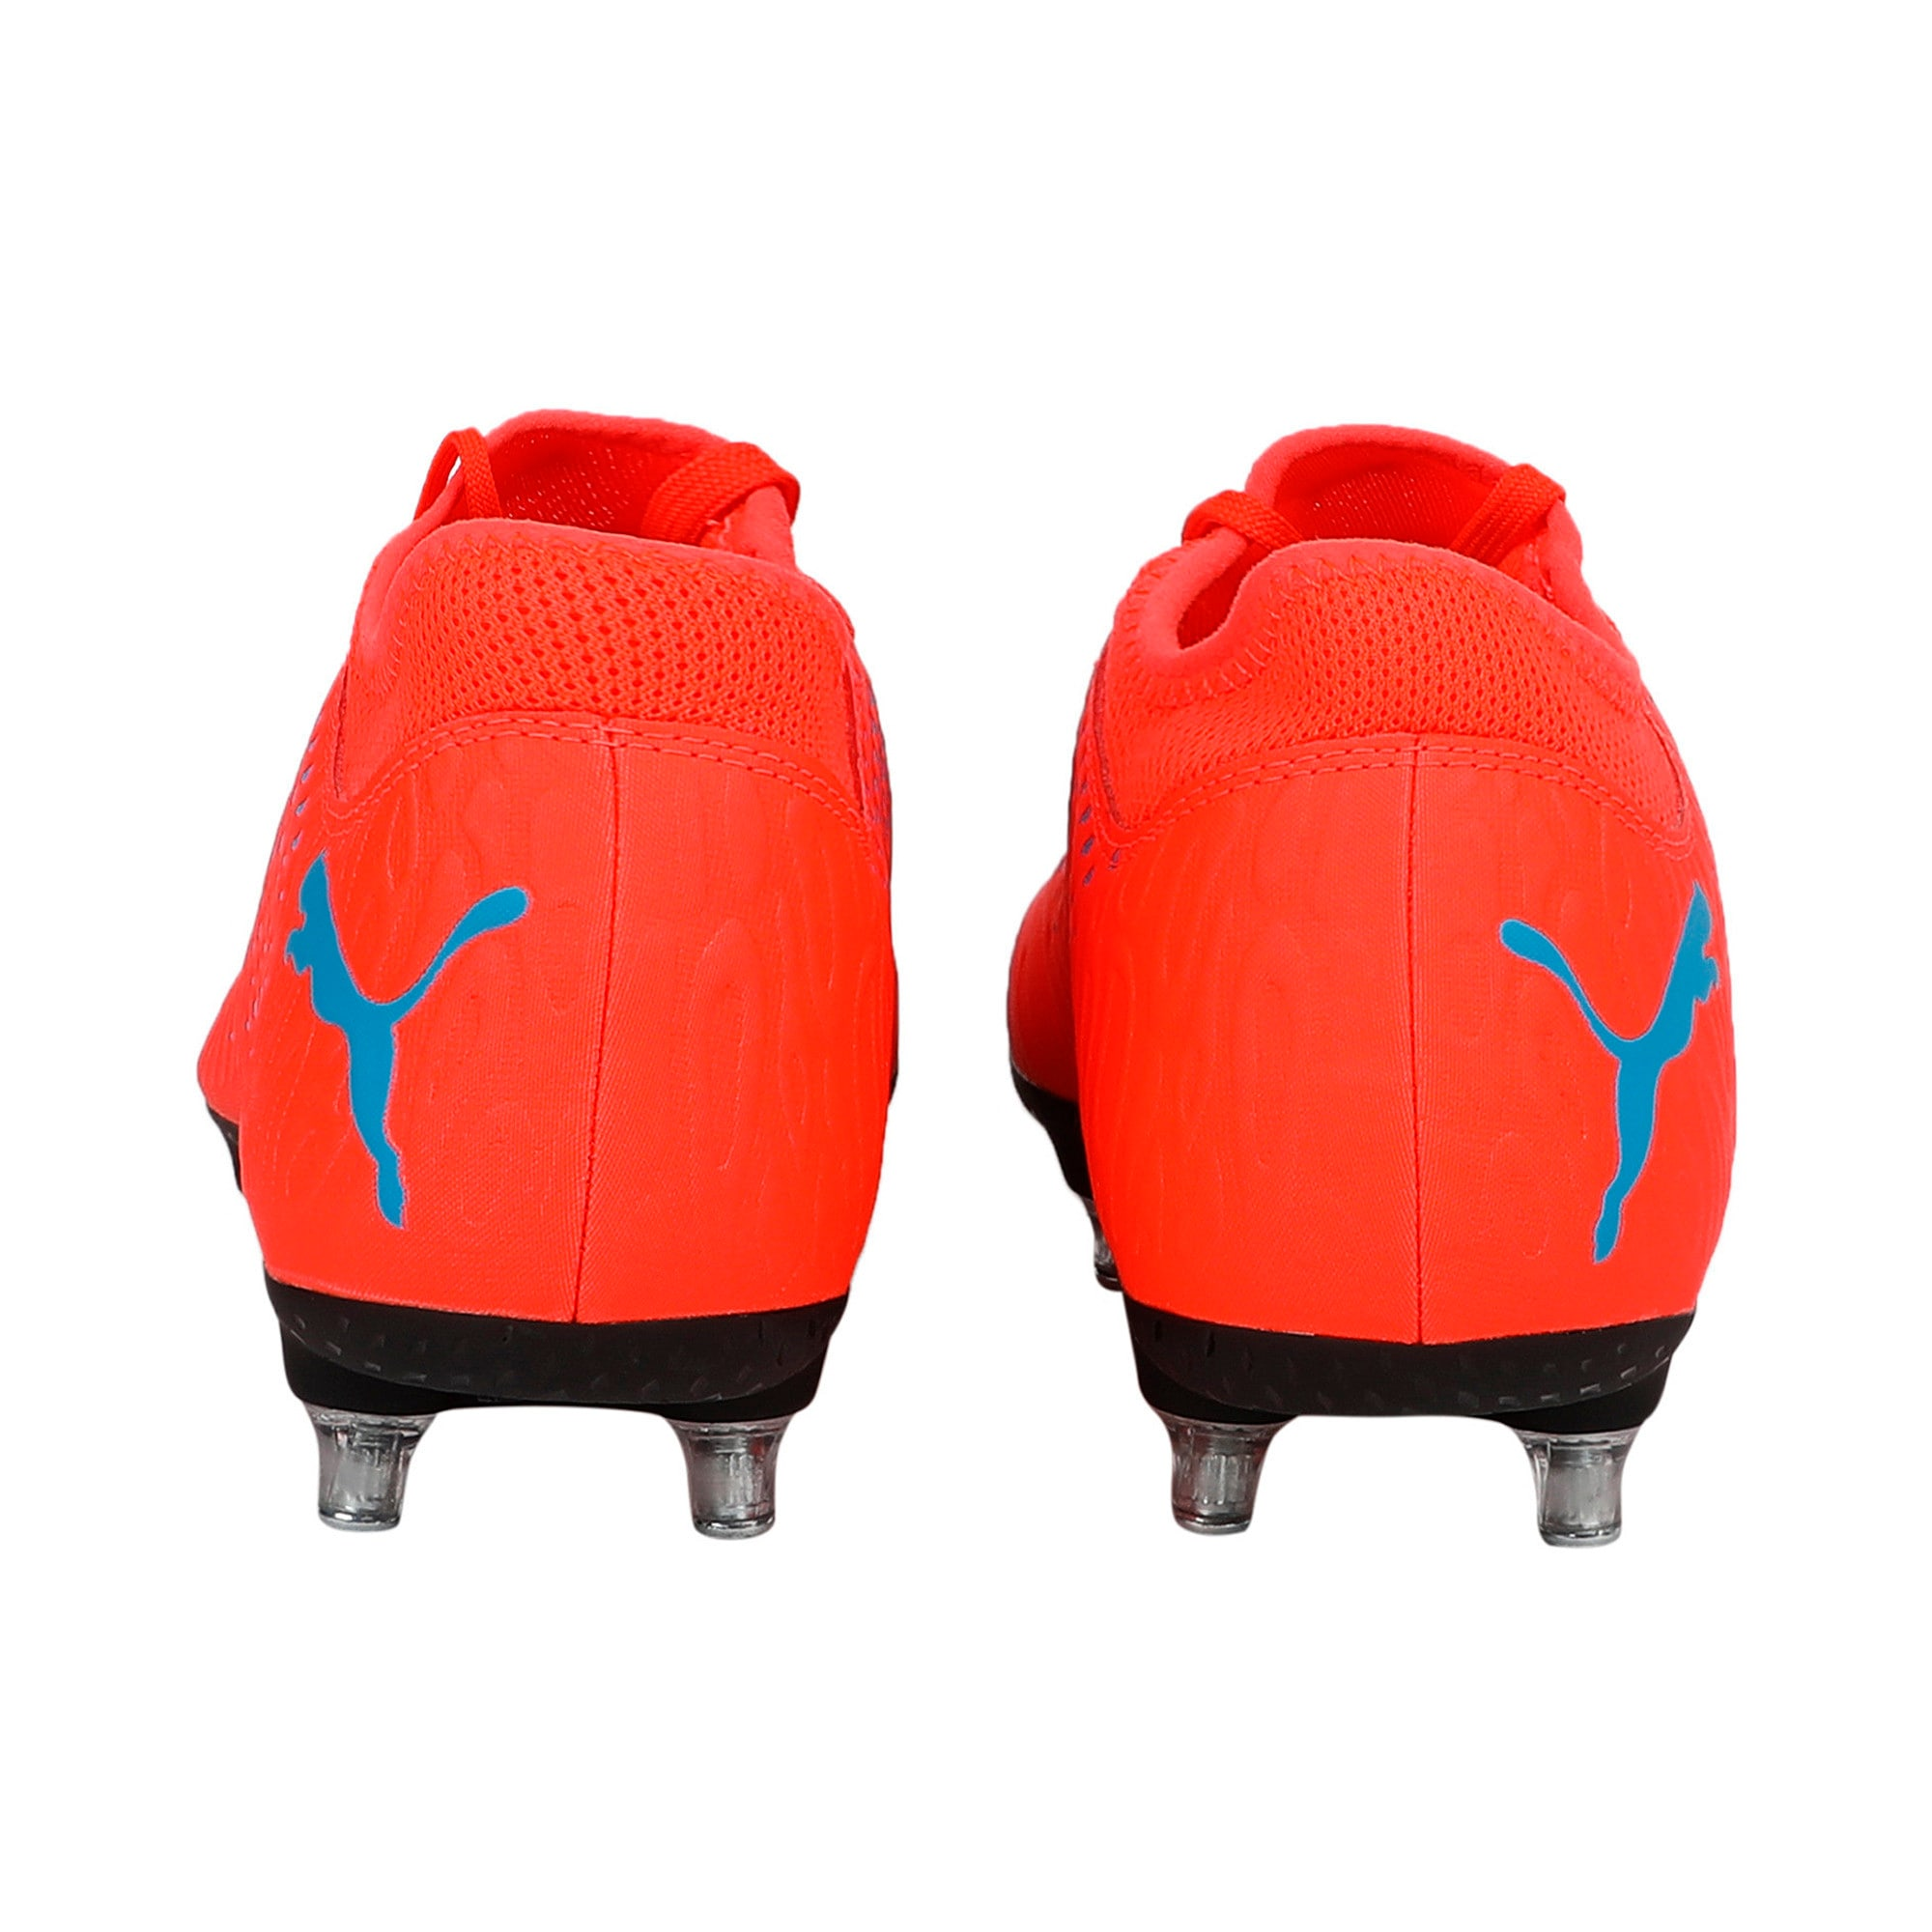 Thumbnail 3 of FUTURE 19.4 SG Men's Football Boots, Red Blast-Bleu Azur, medium-IND